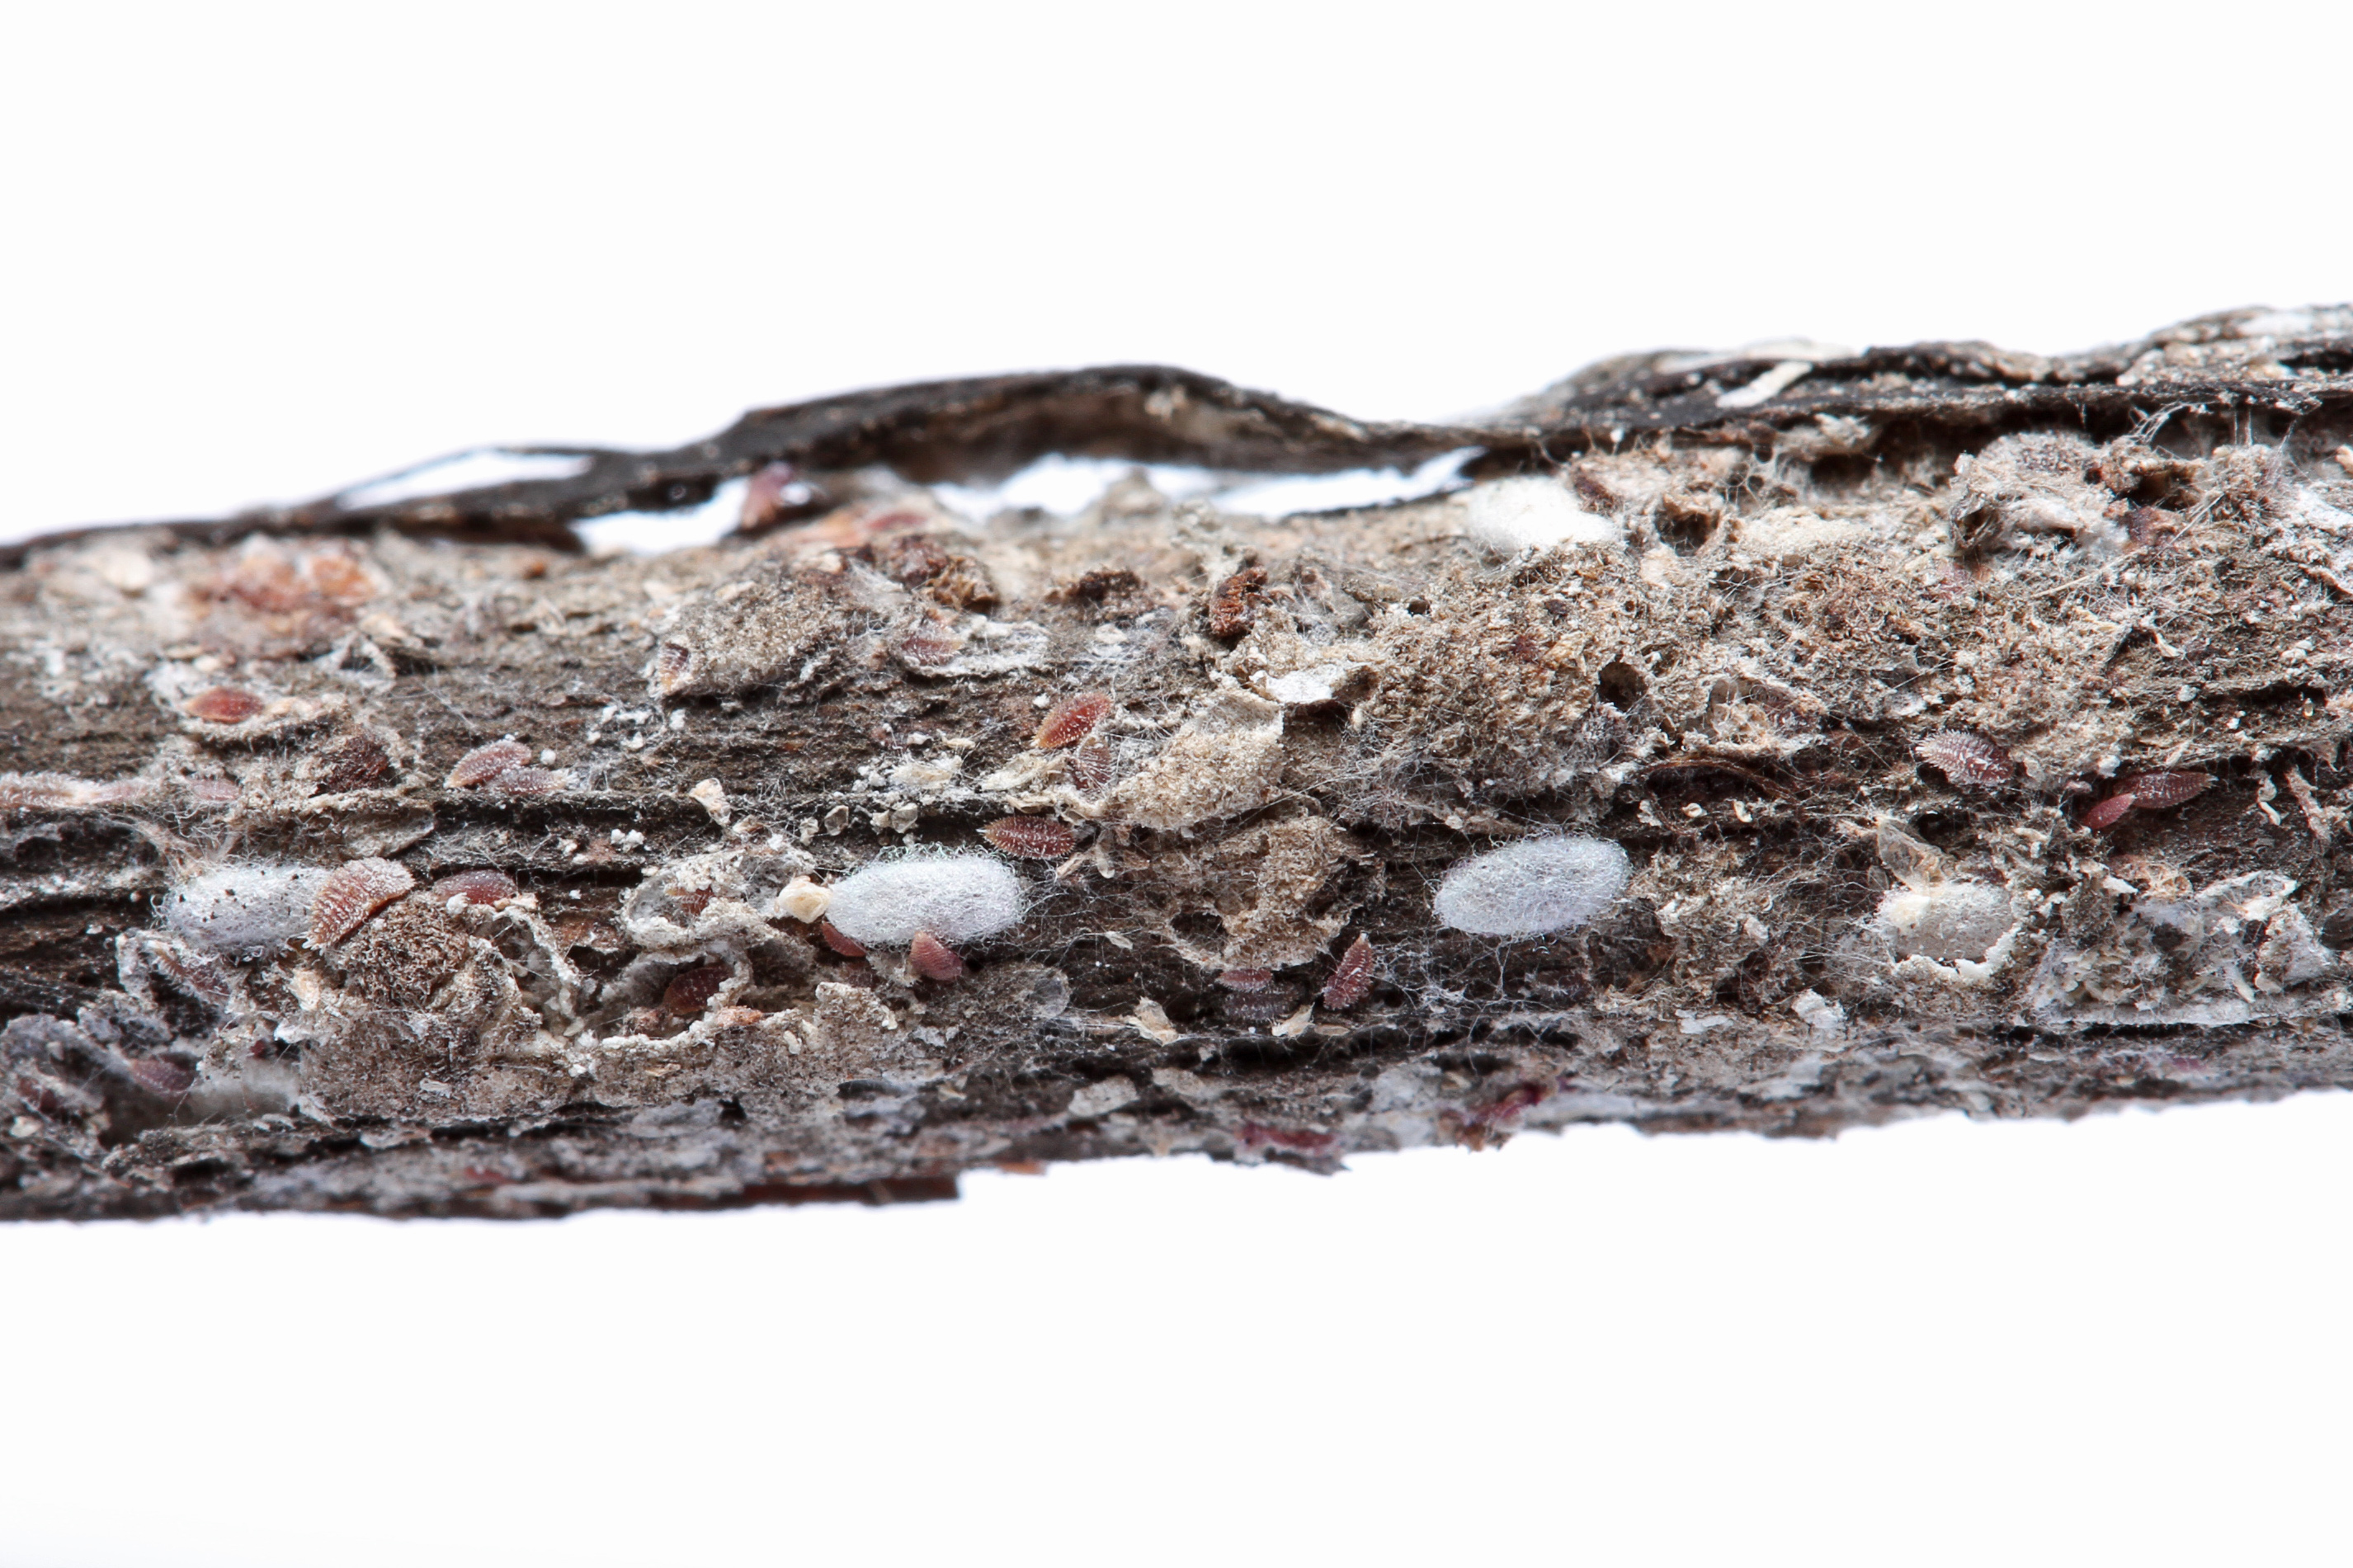 Crapemyrtle bark scale on twig